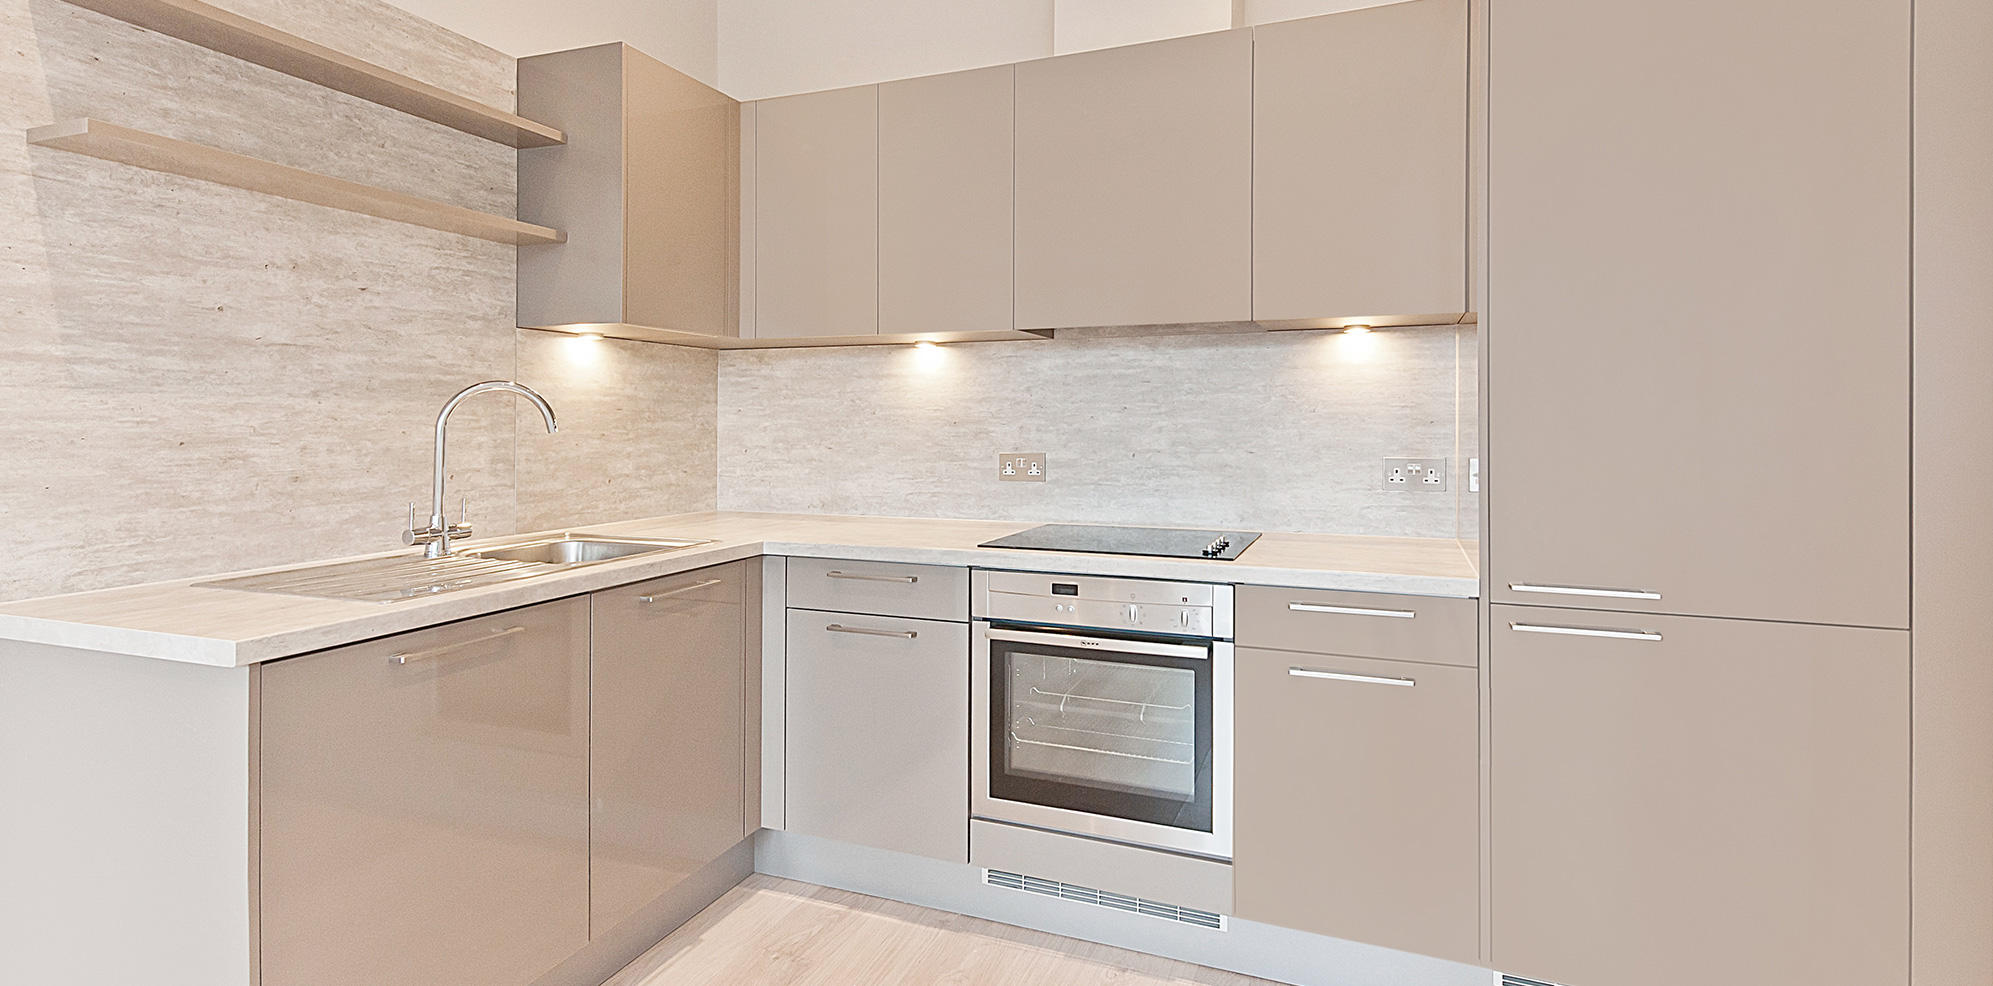 concept-developments-wessex-house-header-kitchen